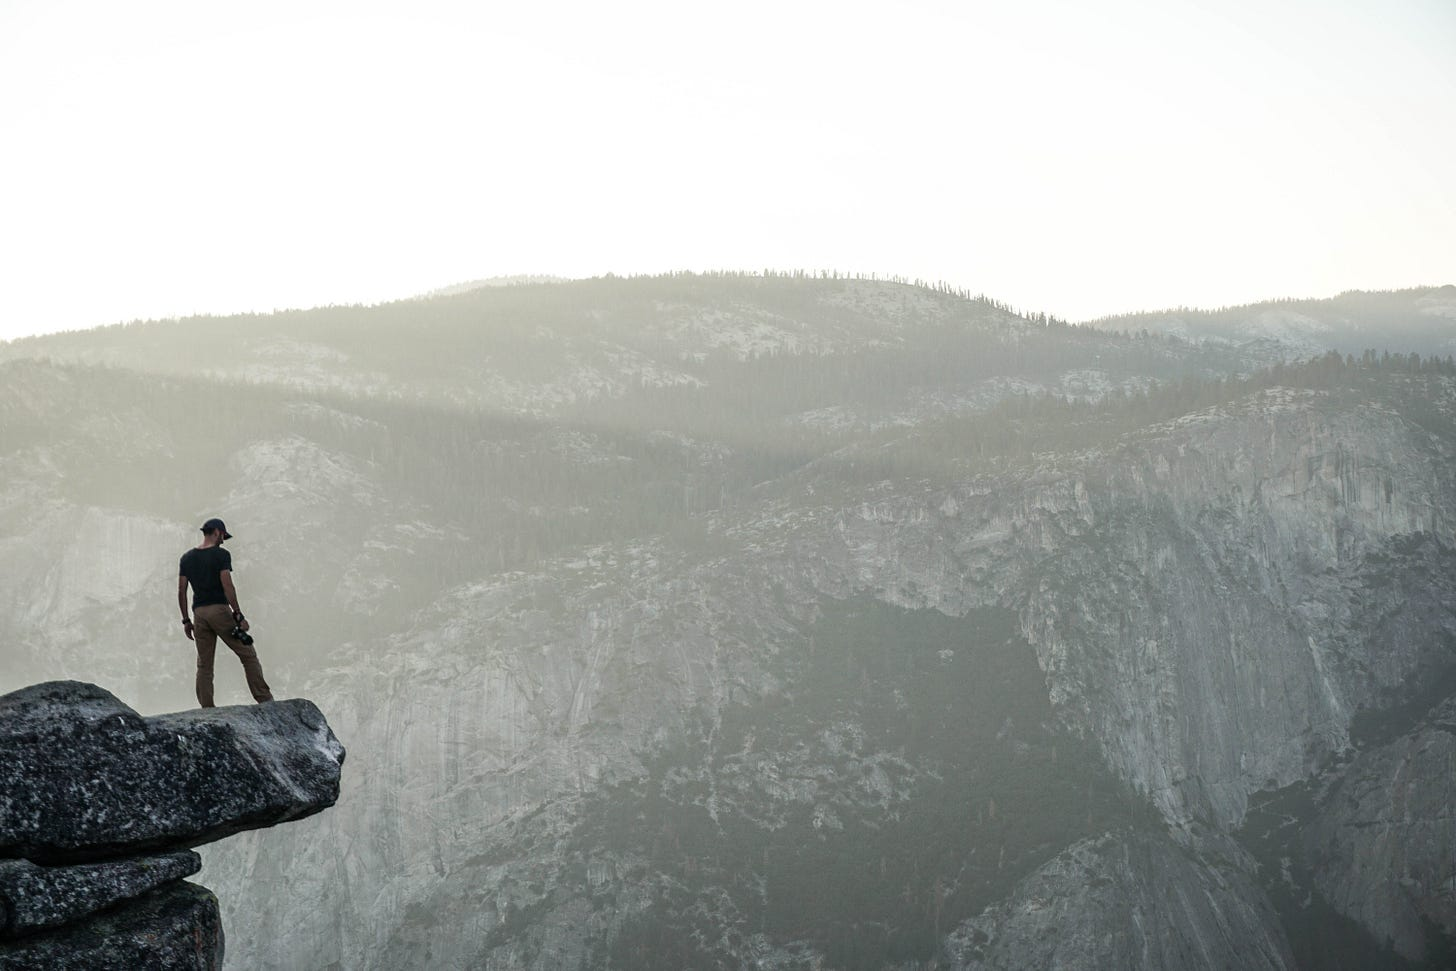 Person standing on ledge in mountains